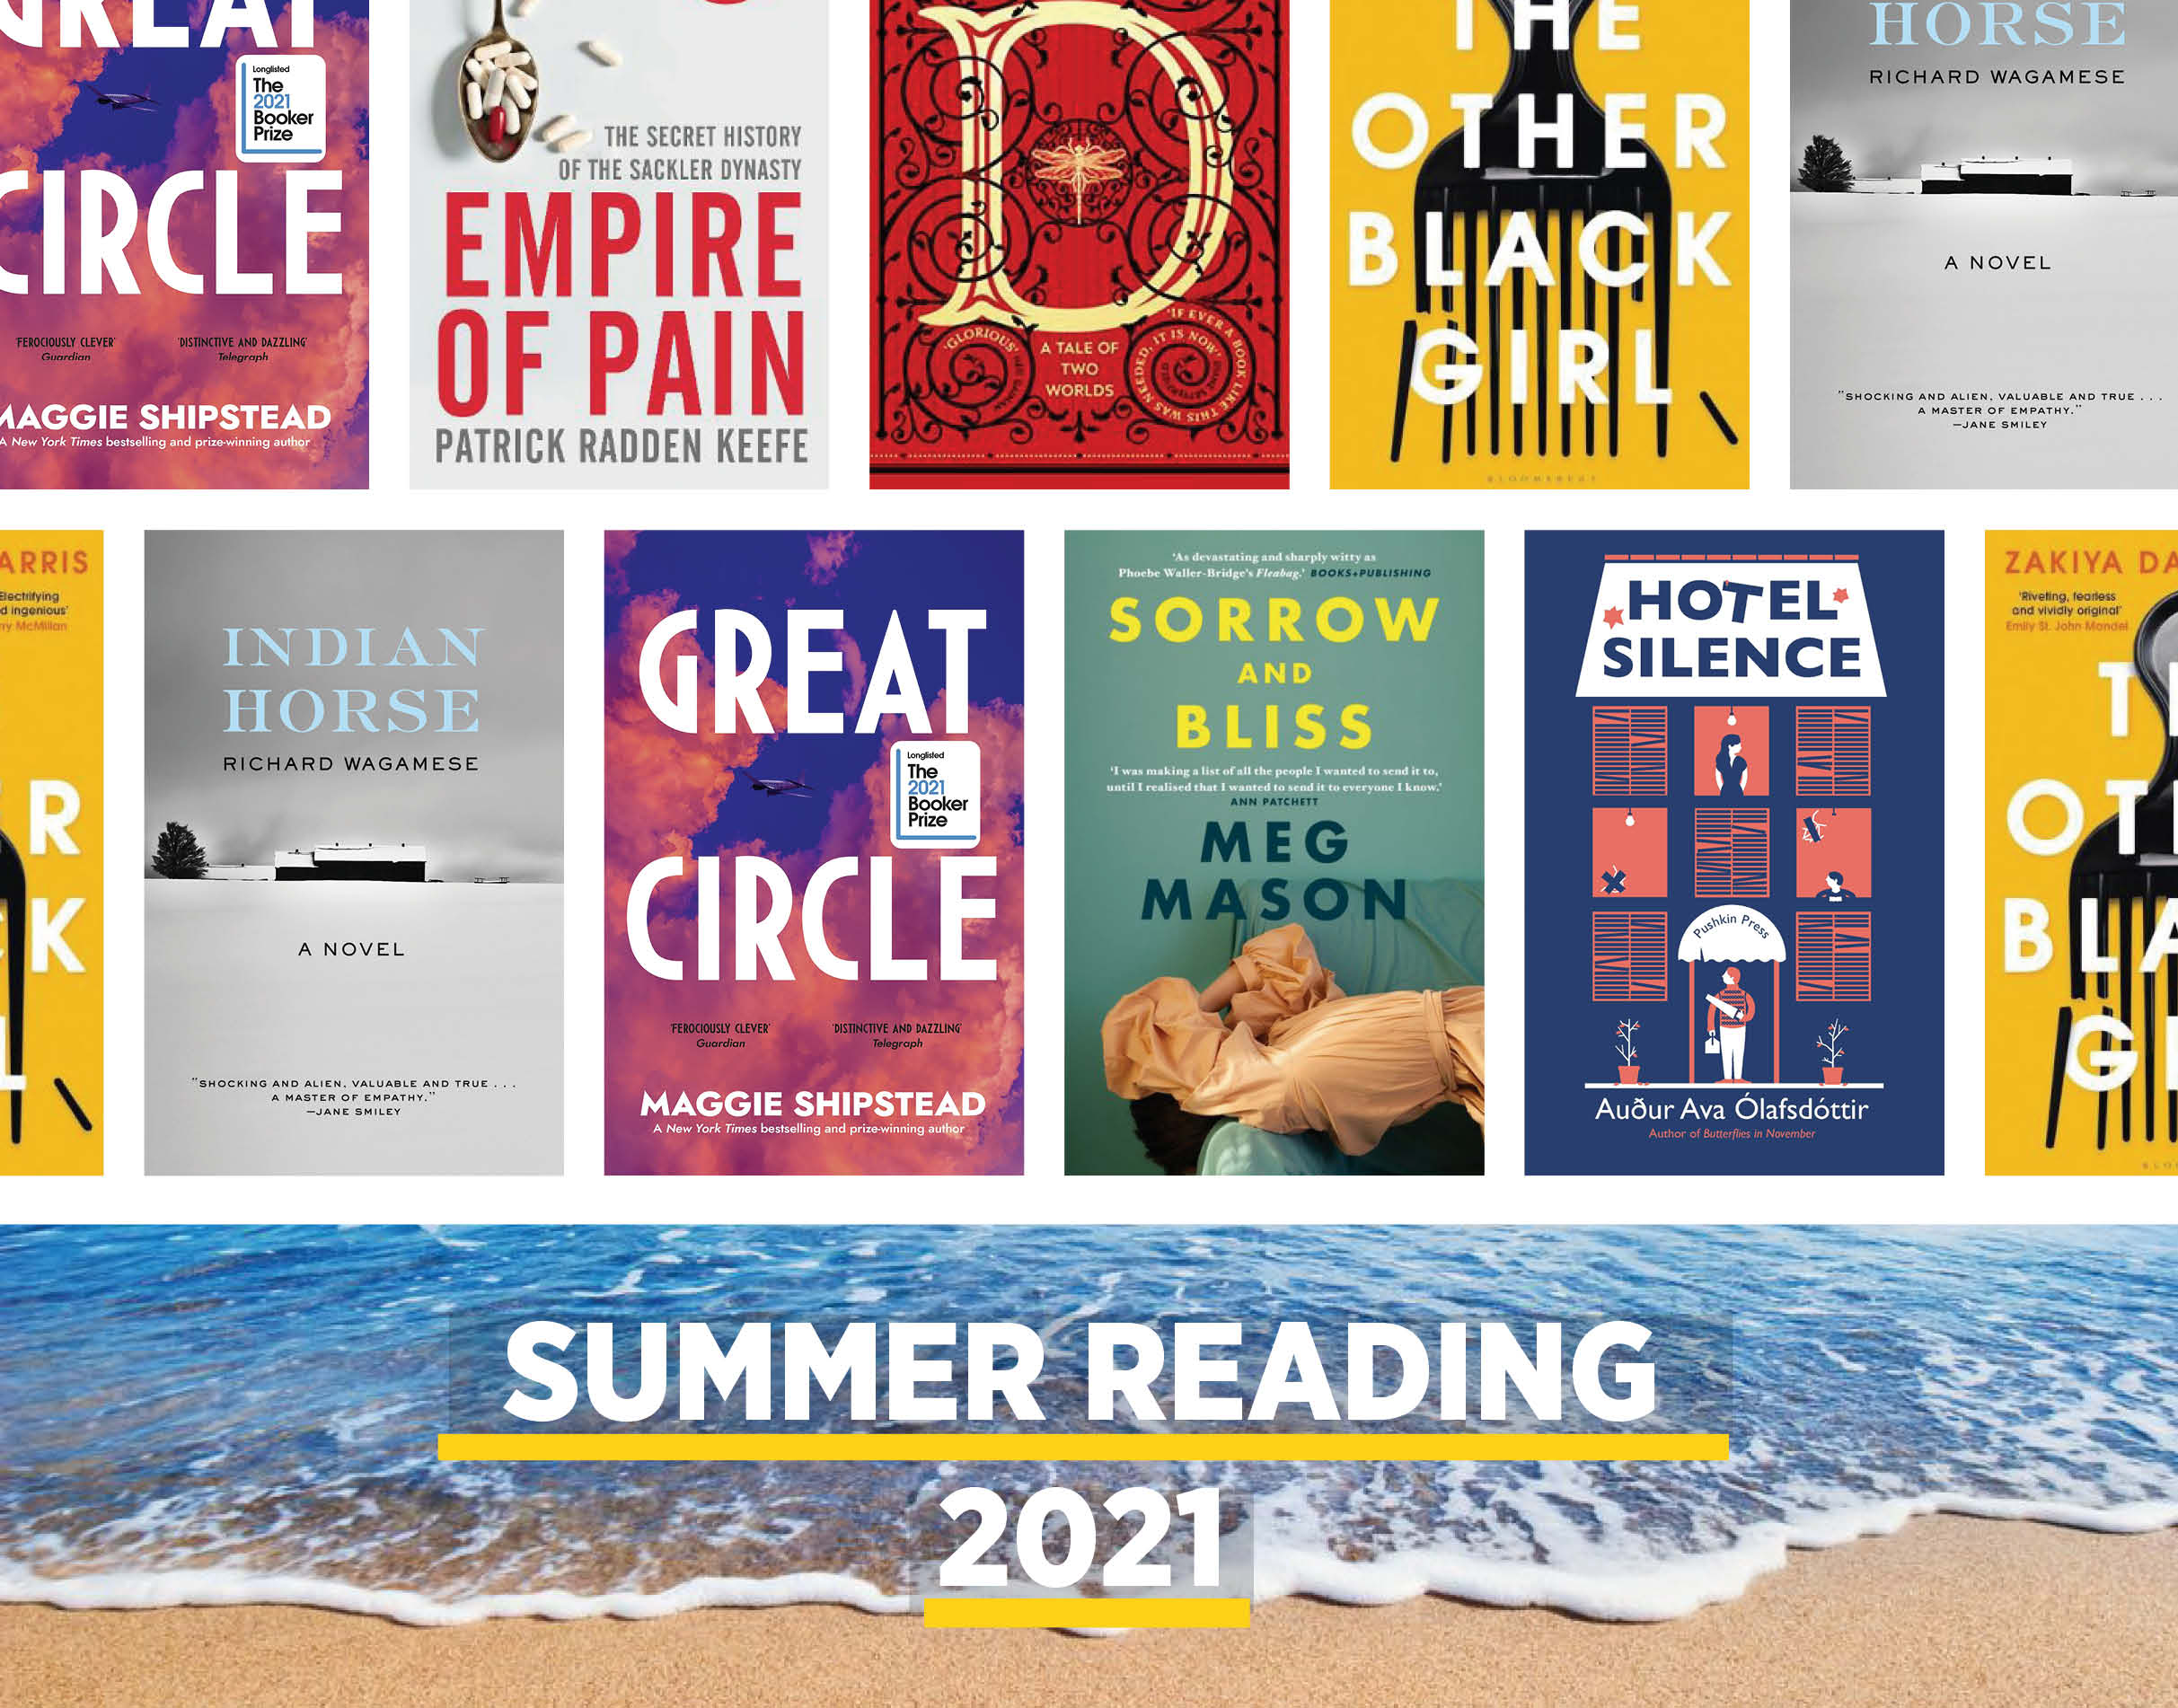 summer reading montage of book covers